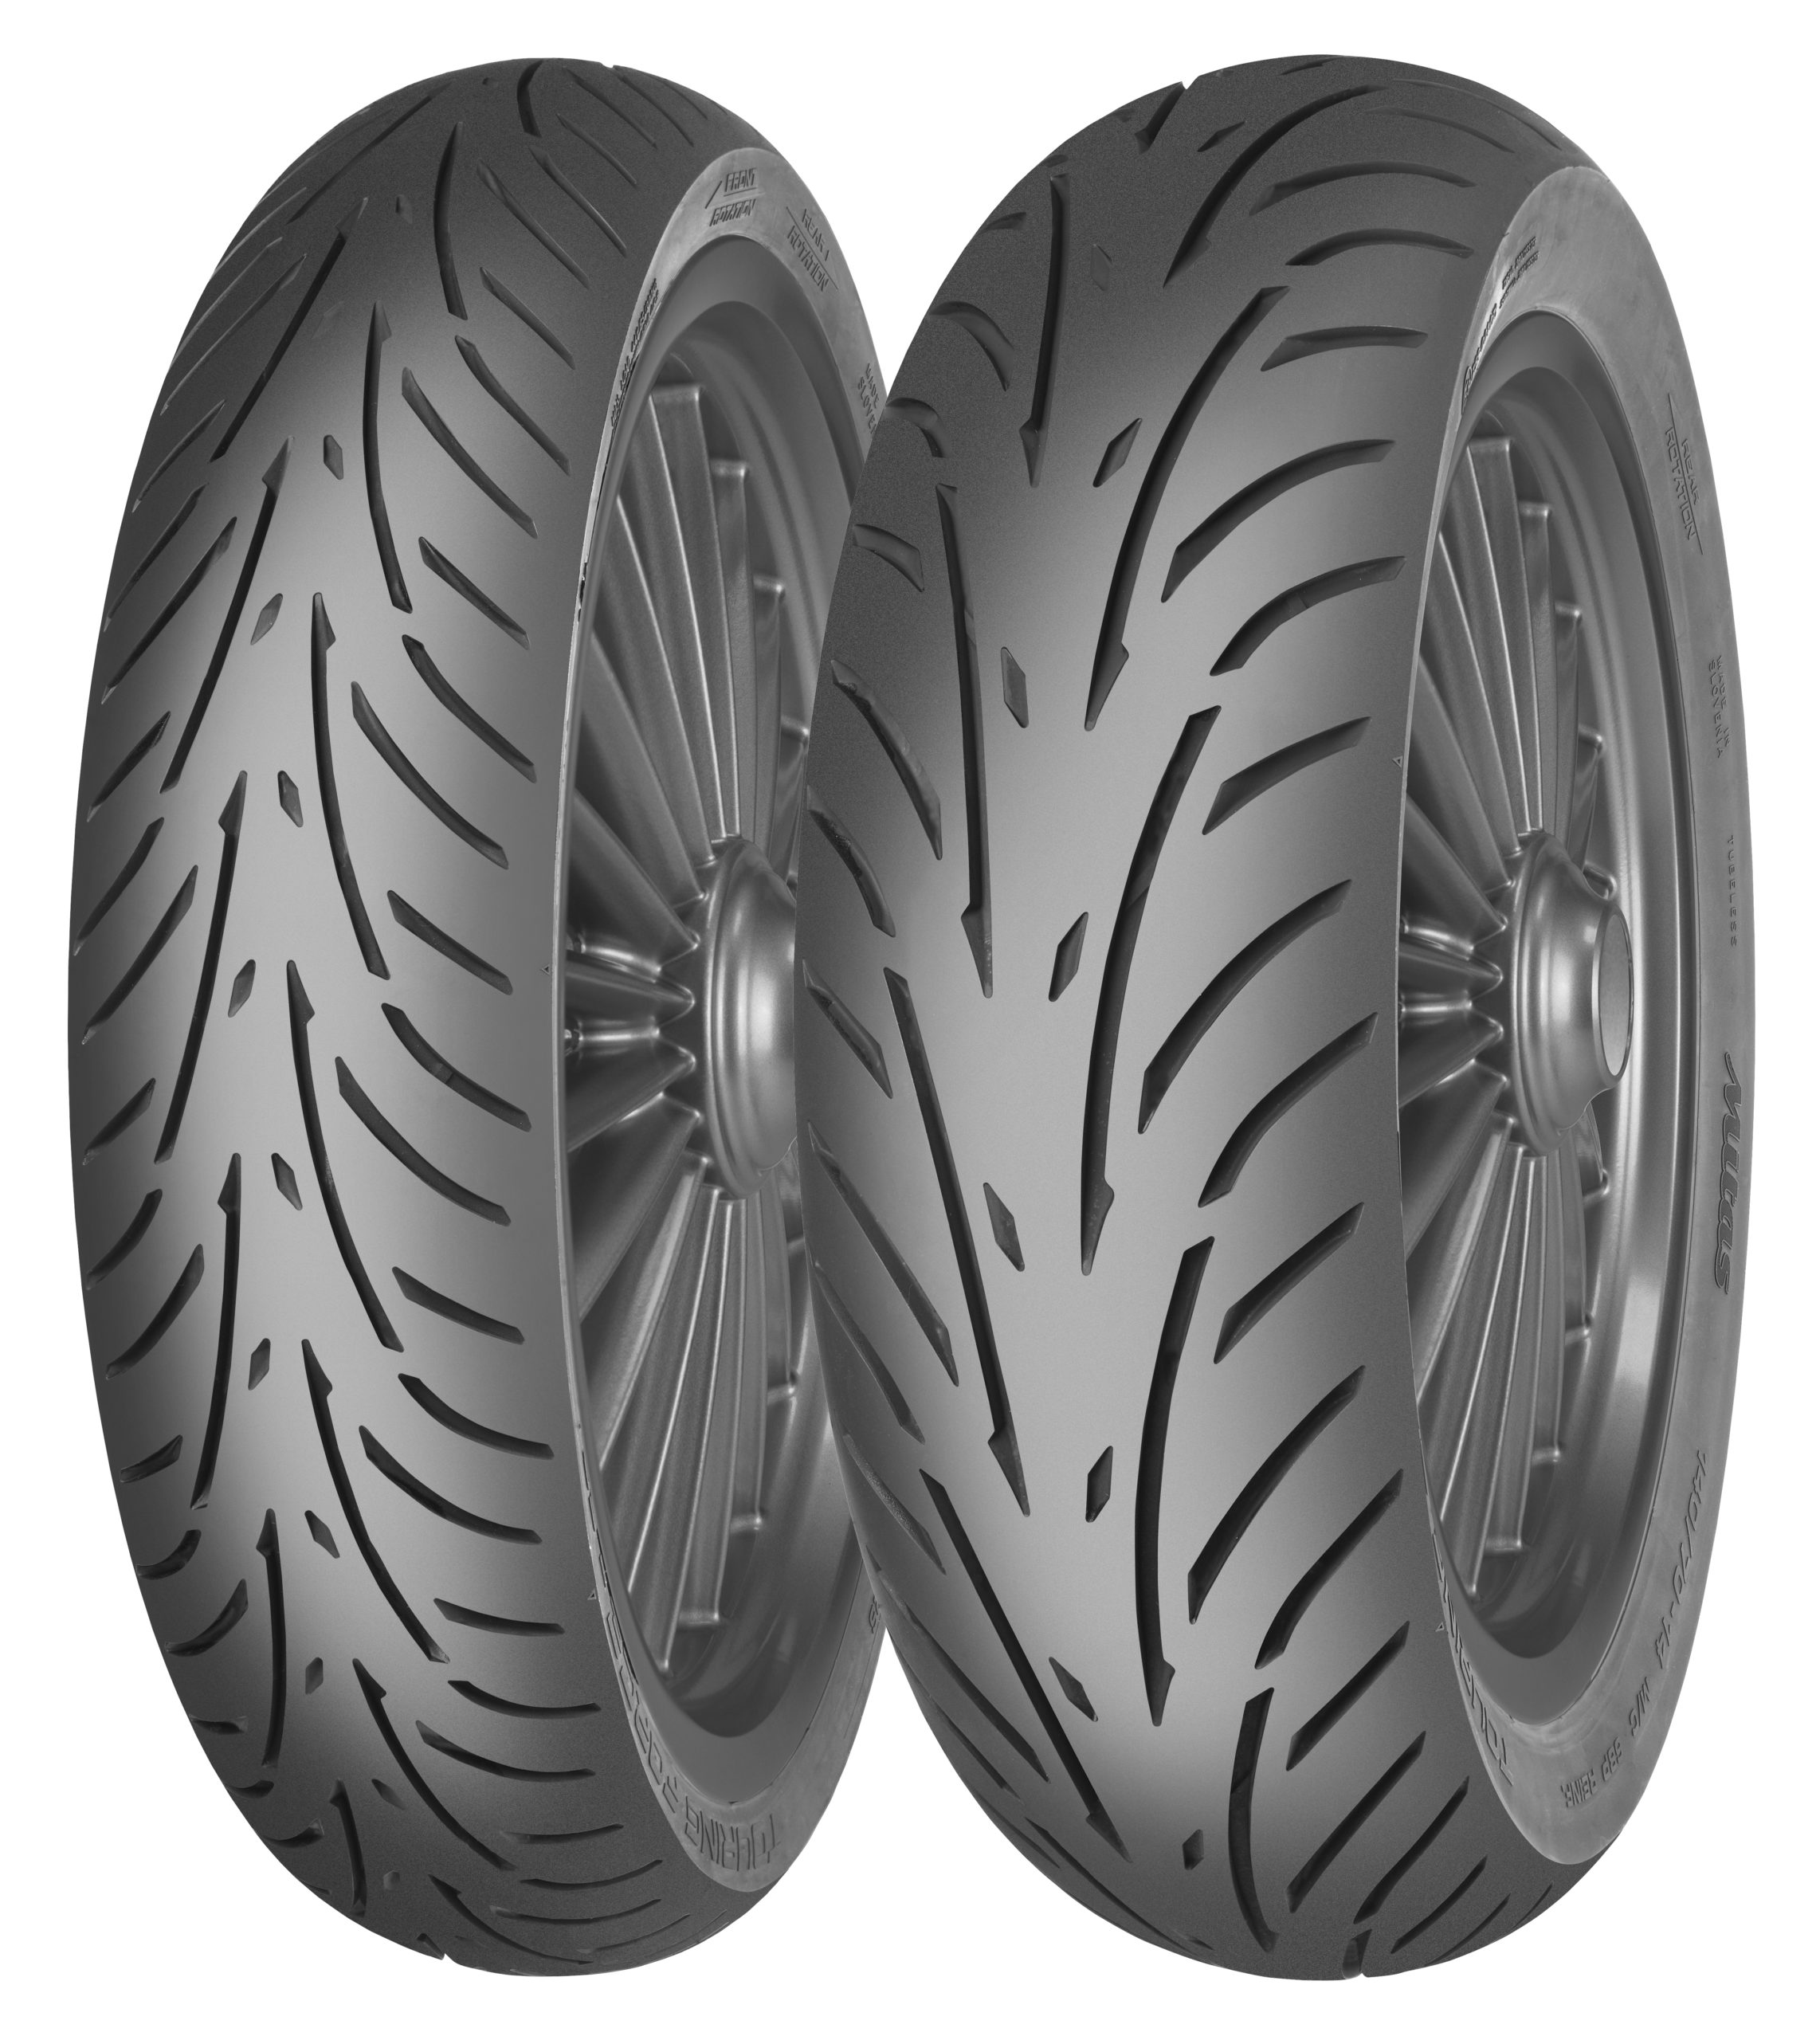 Anvelopa 130/80-15 TOURING FORCE-SC 63P TL MITAS